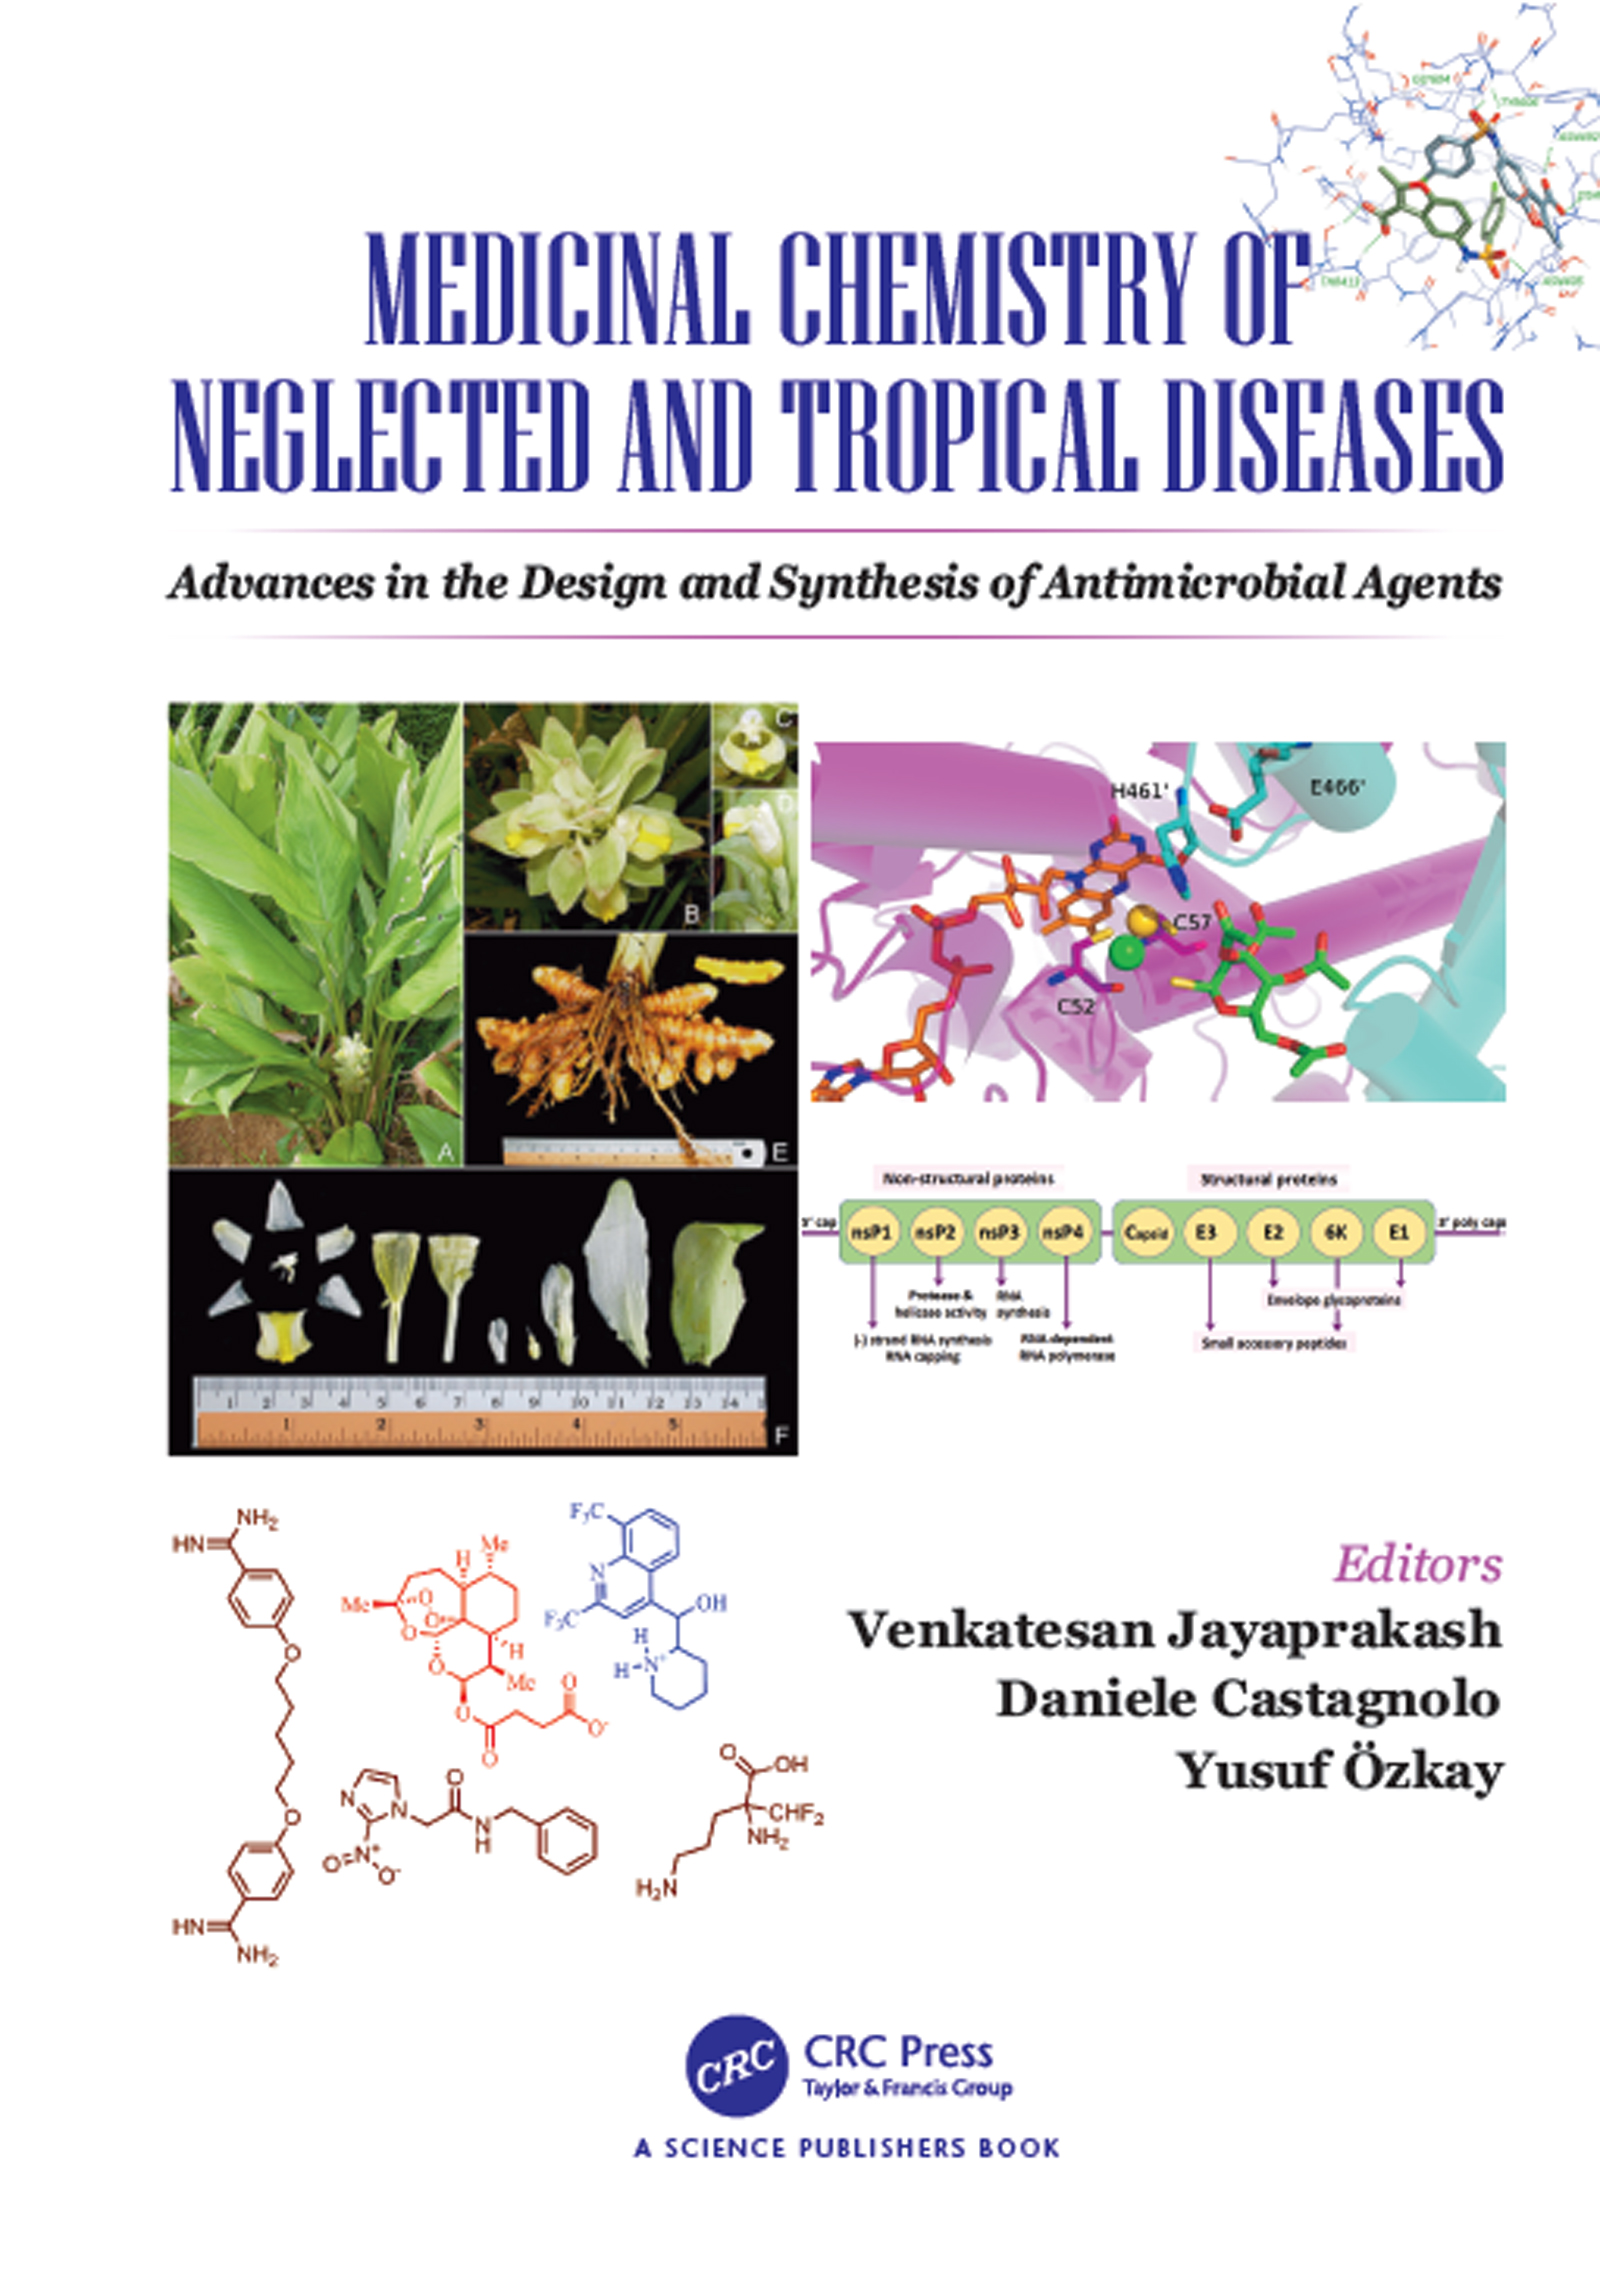 Medicinal Chemistry of Neglected Tropical Diseases: Advances in the Design and Synthesis of Antimicrobial Agents book cover